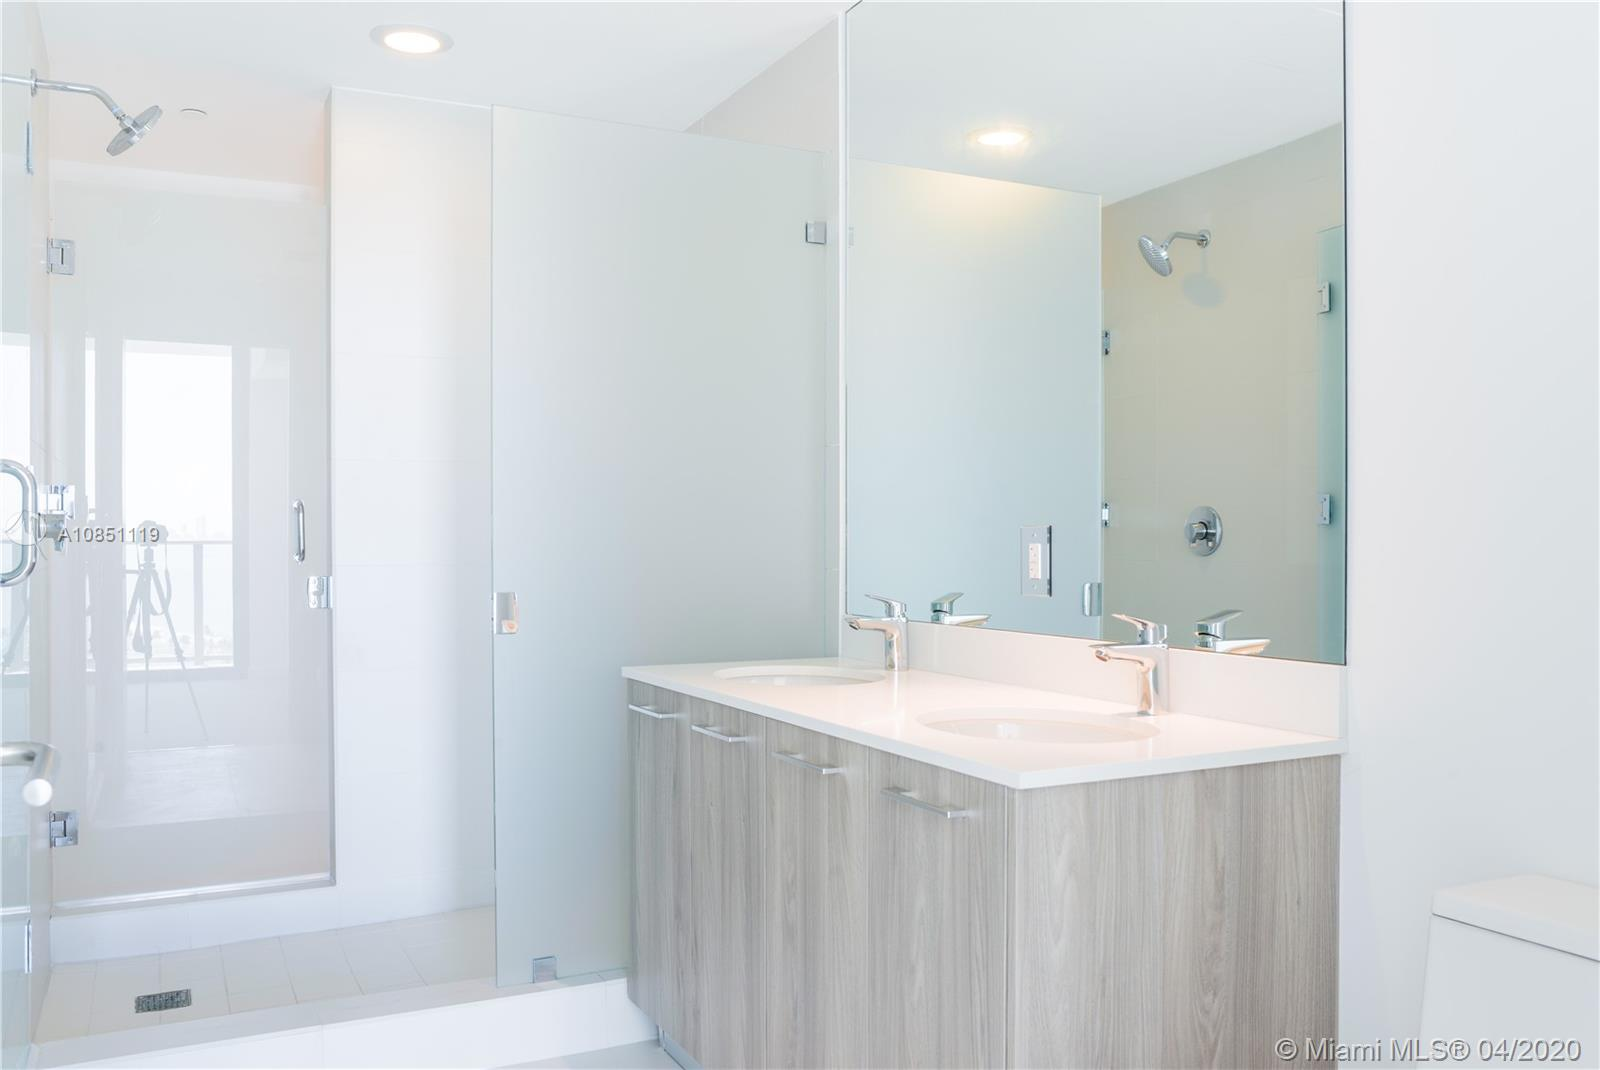 Photo of 501 NE 31 st #2104 listing for Sale